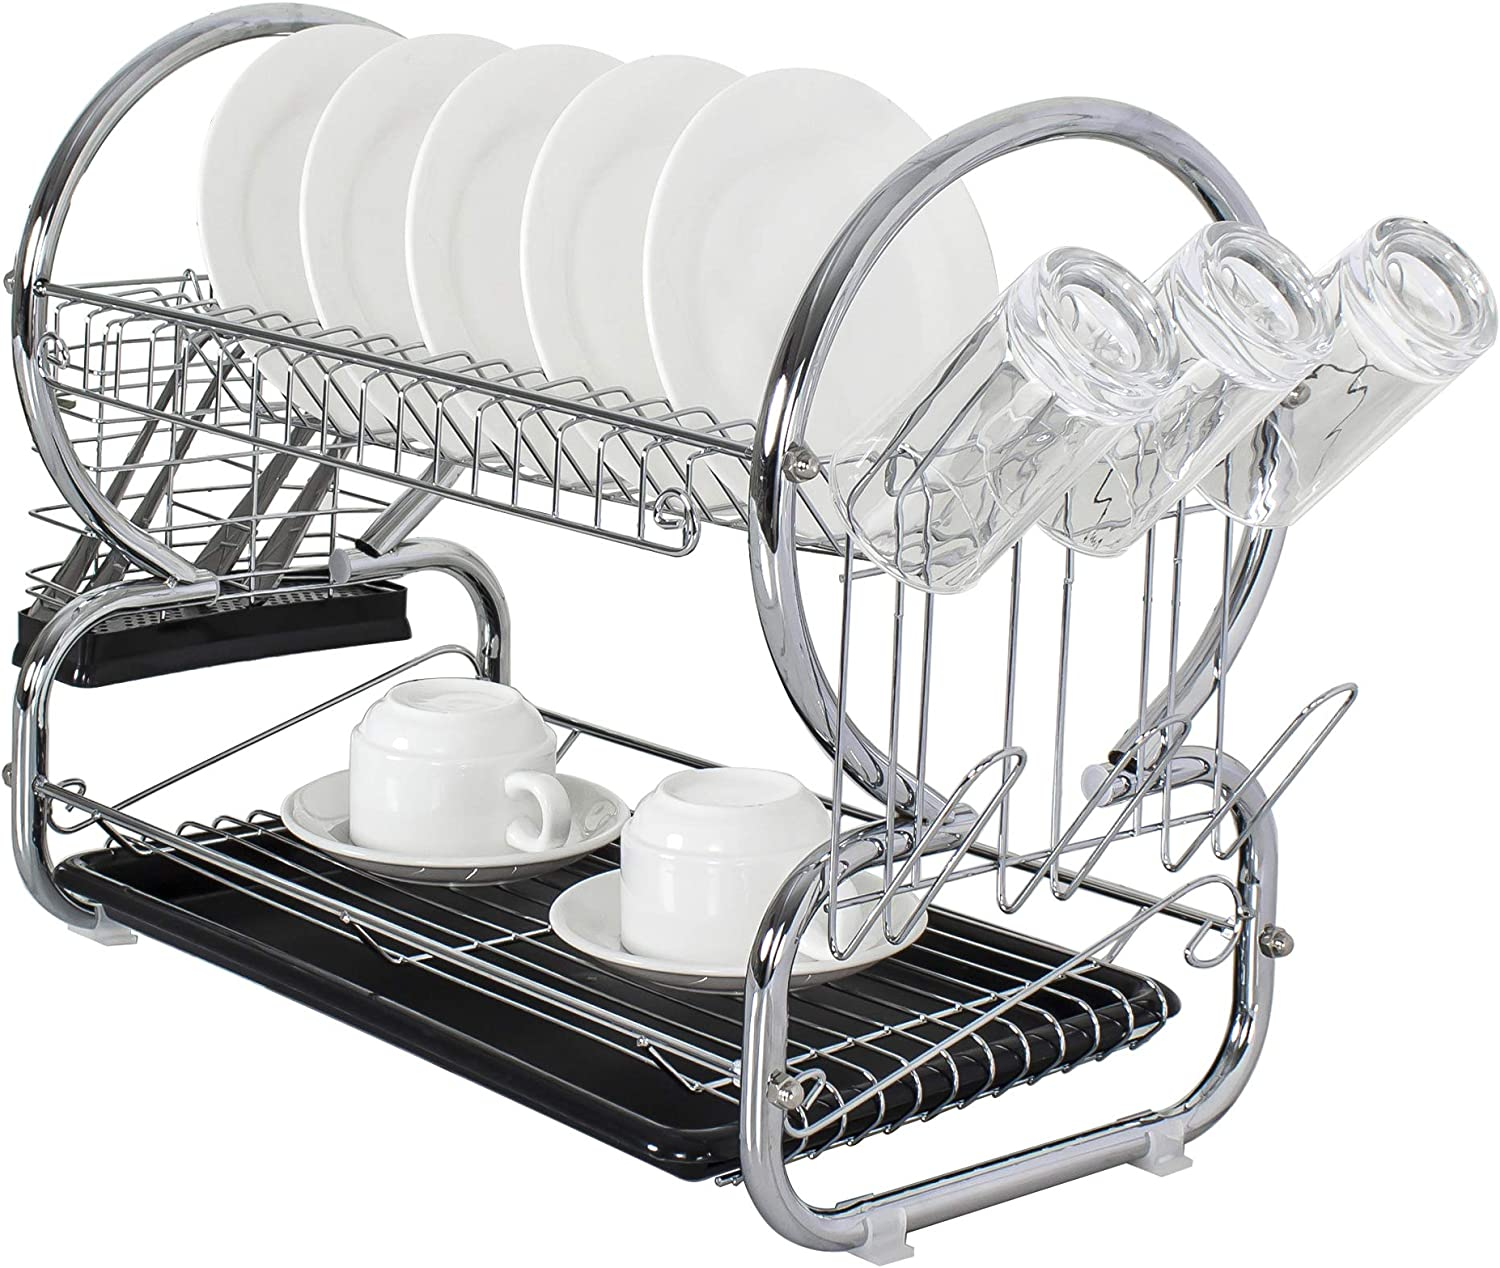 Durable Chrome Rust Proof 2 Tier Black Large Drying 2021 Rack New product type D Dish